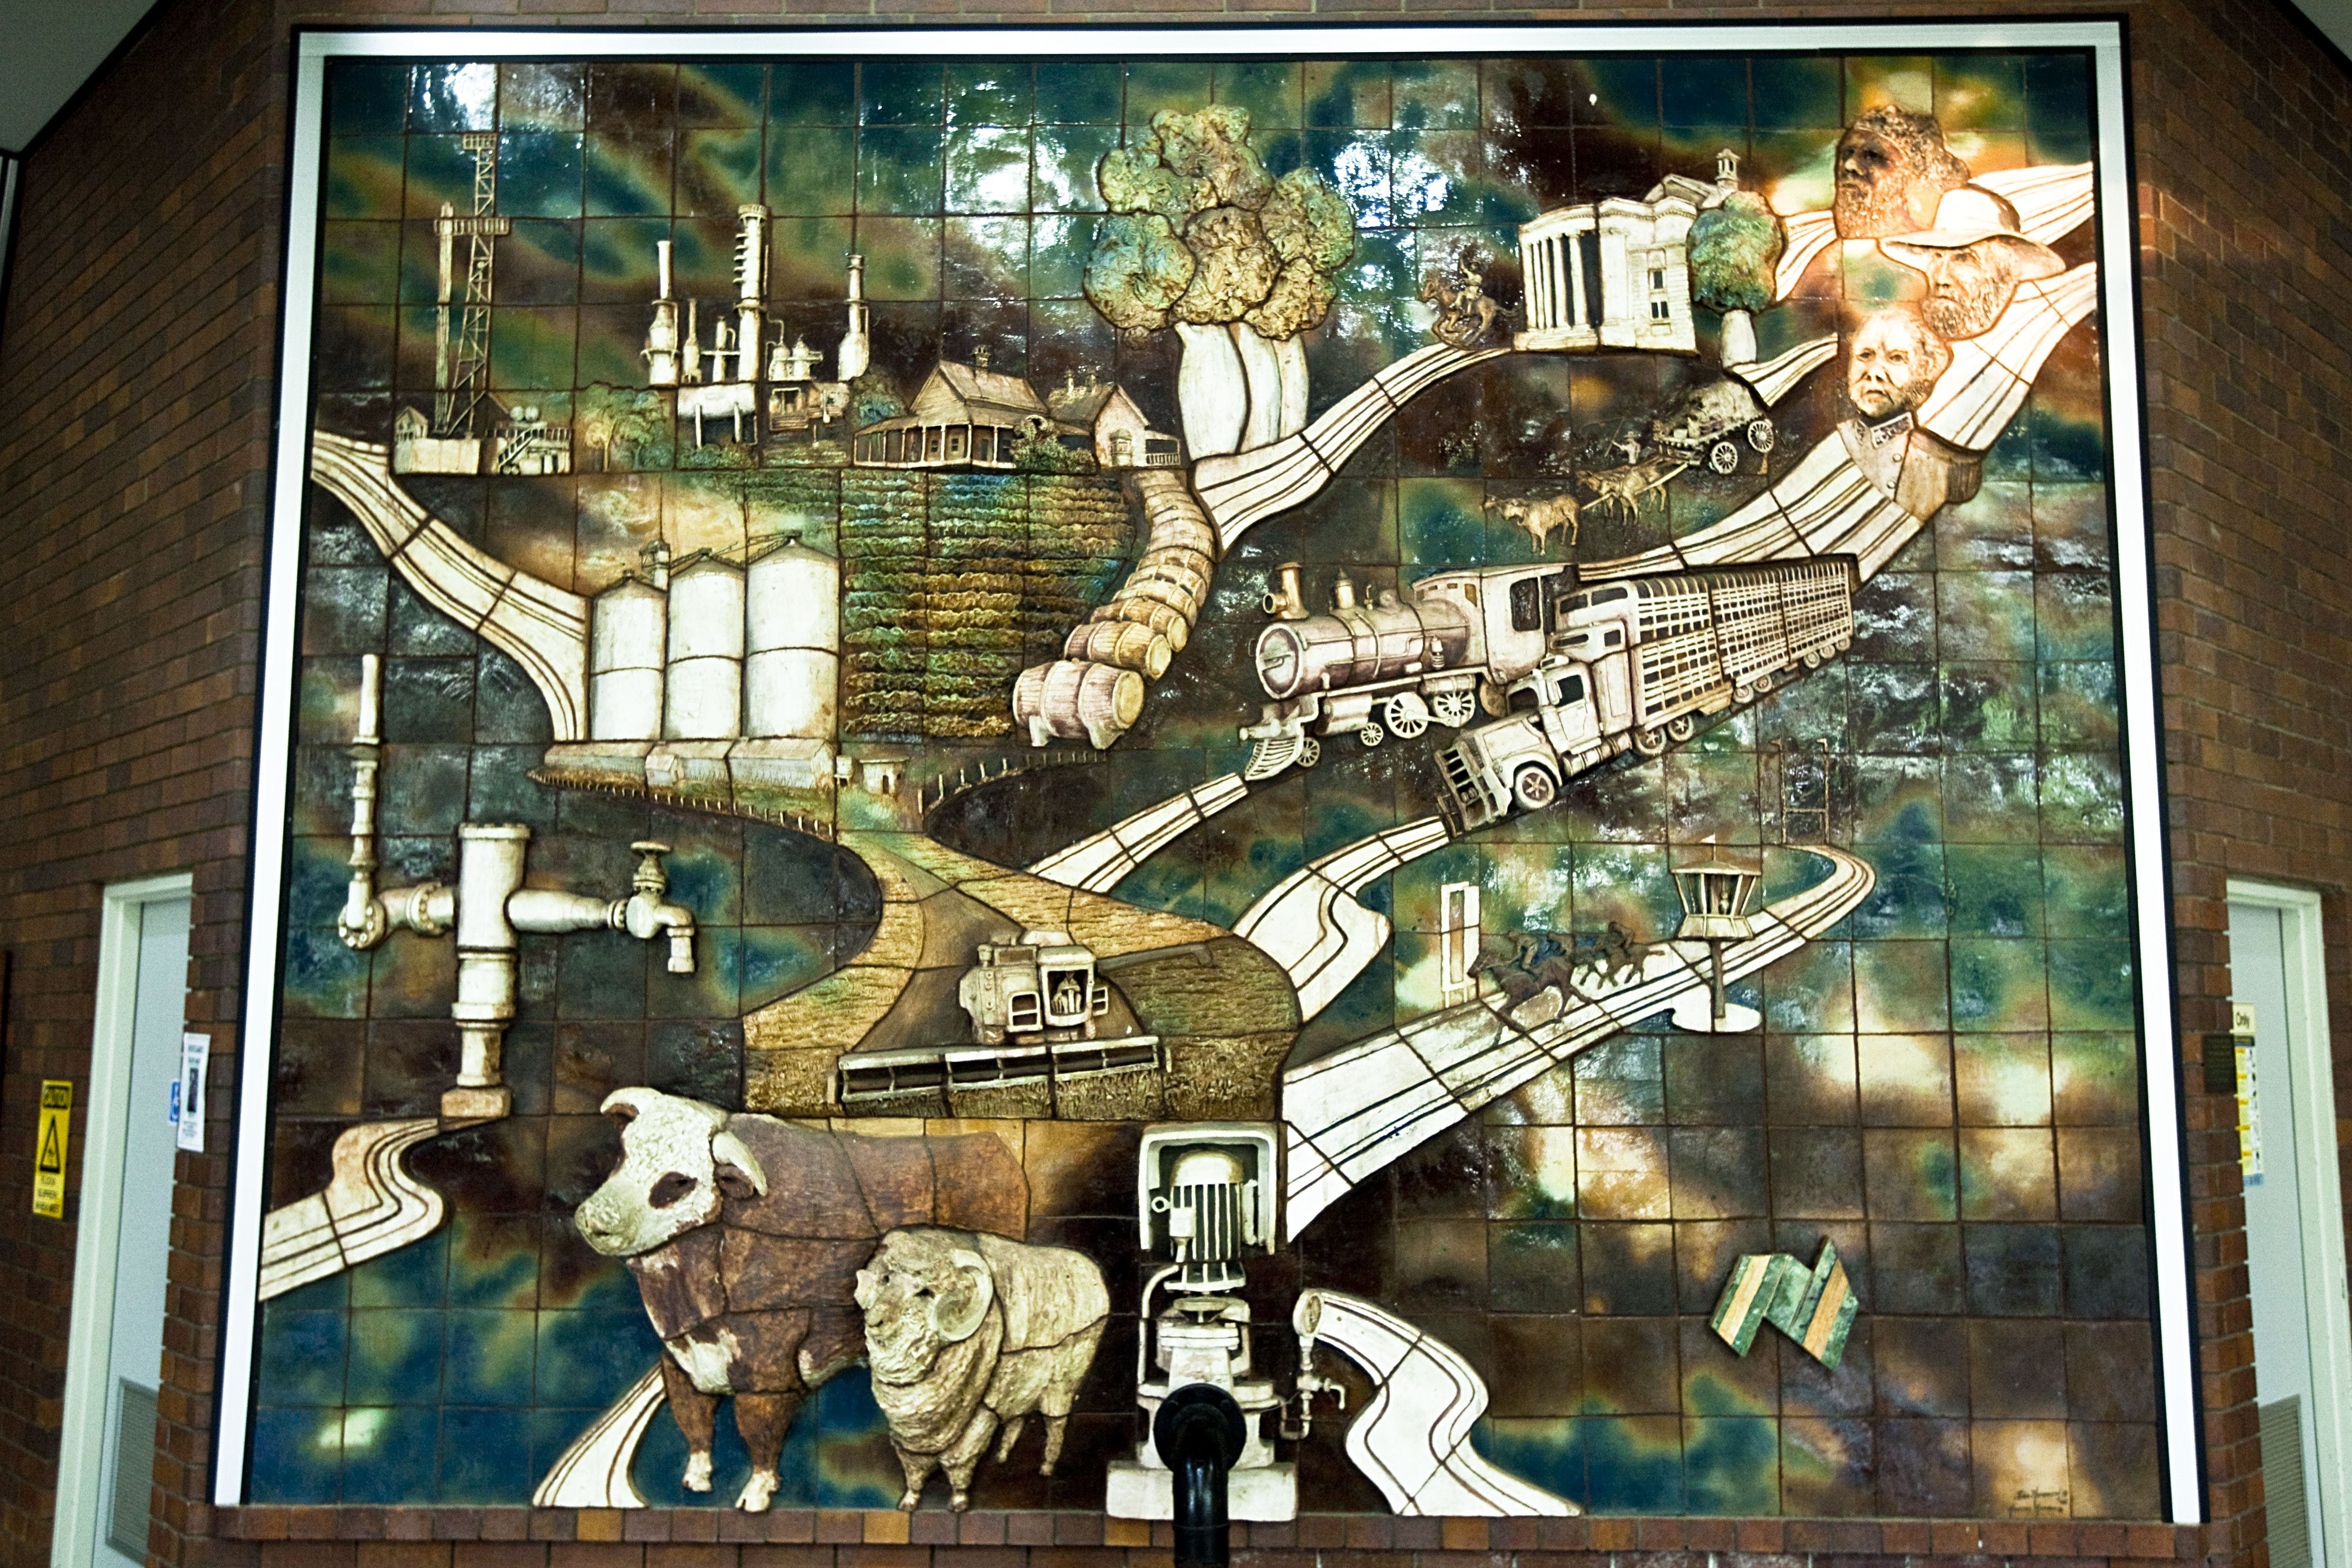 Three Dimensional Mural - Attractions Brisbane